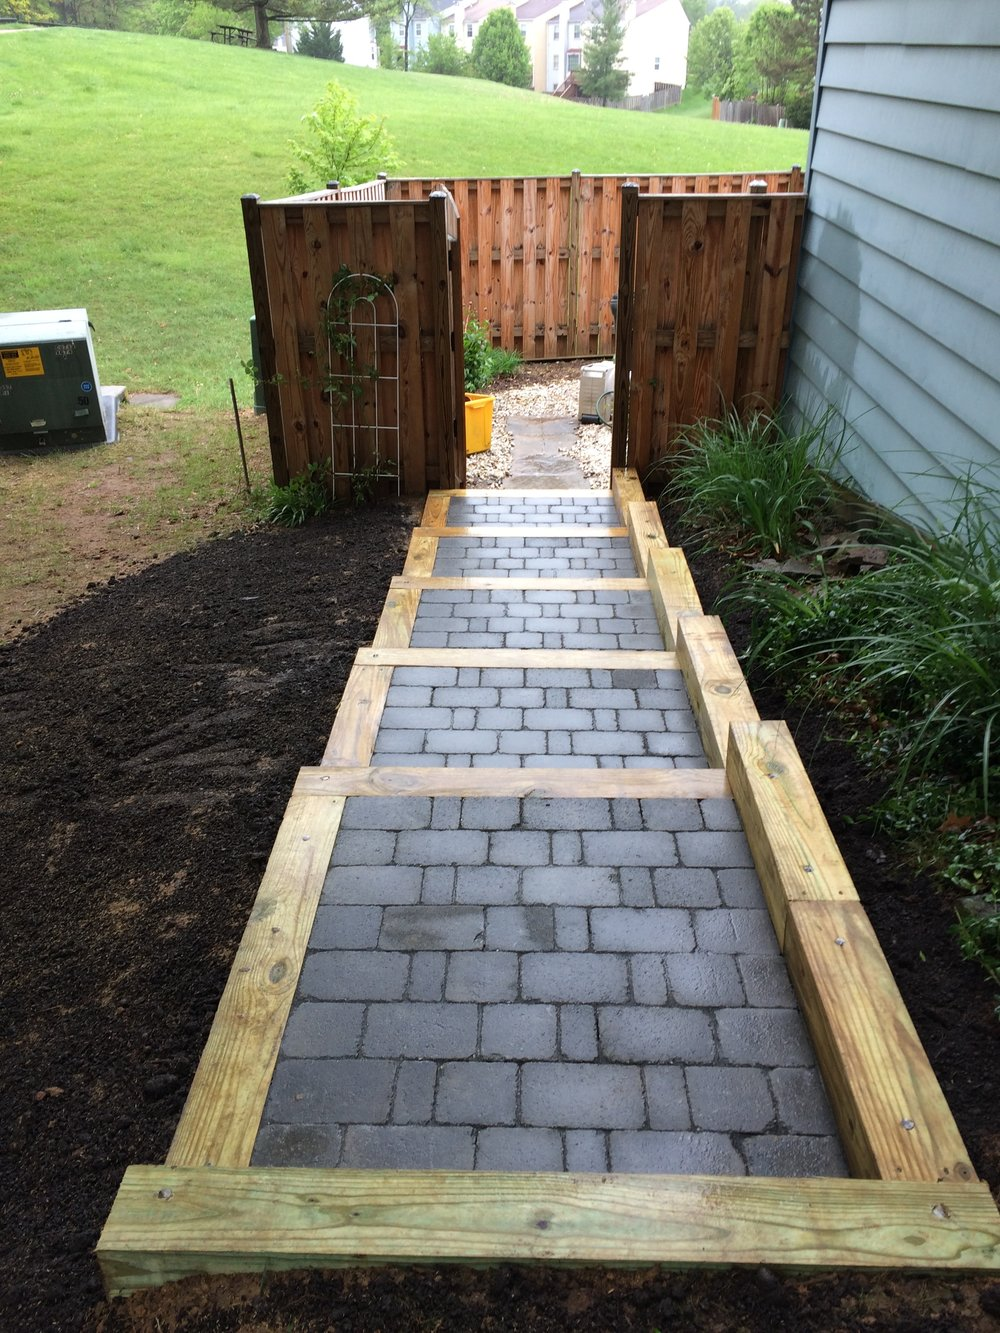 dublincobble_sableblend steps_with6x6.JPG